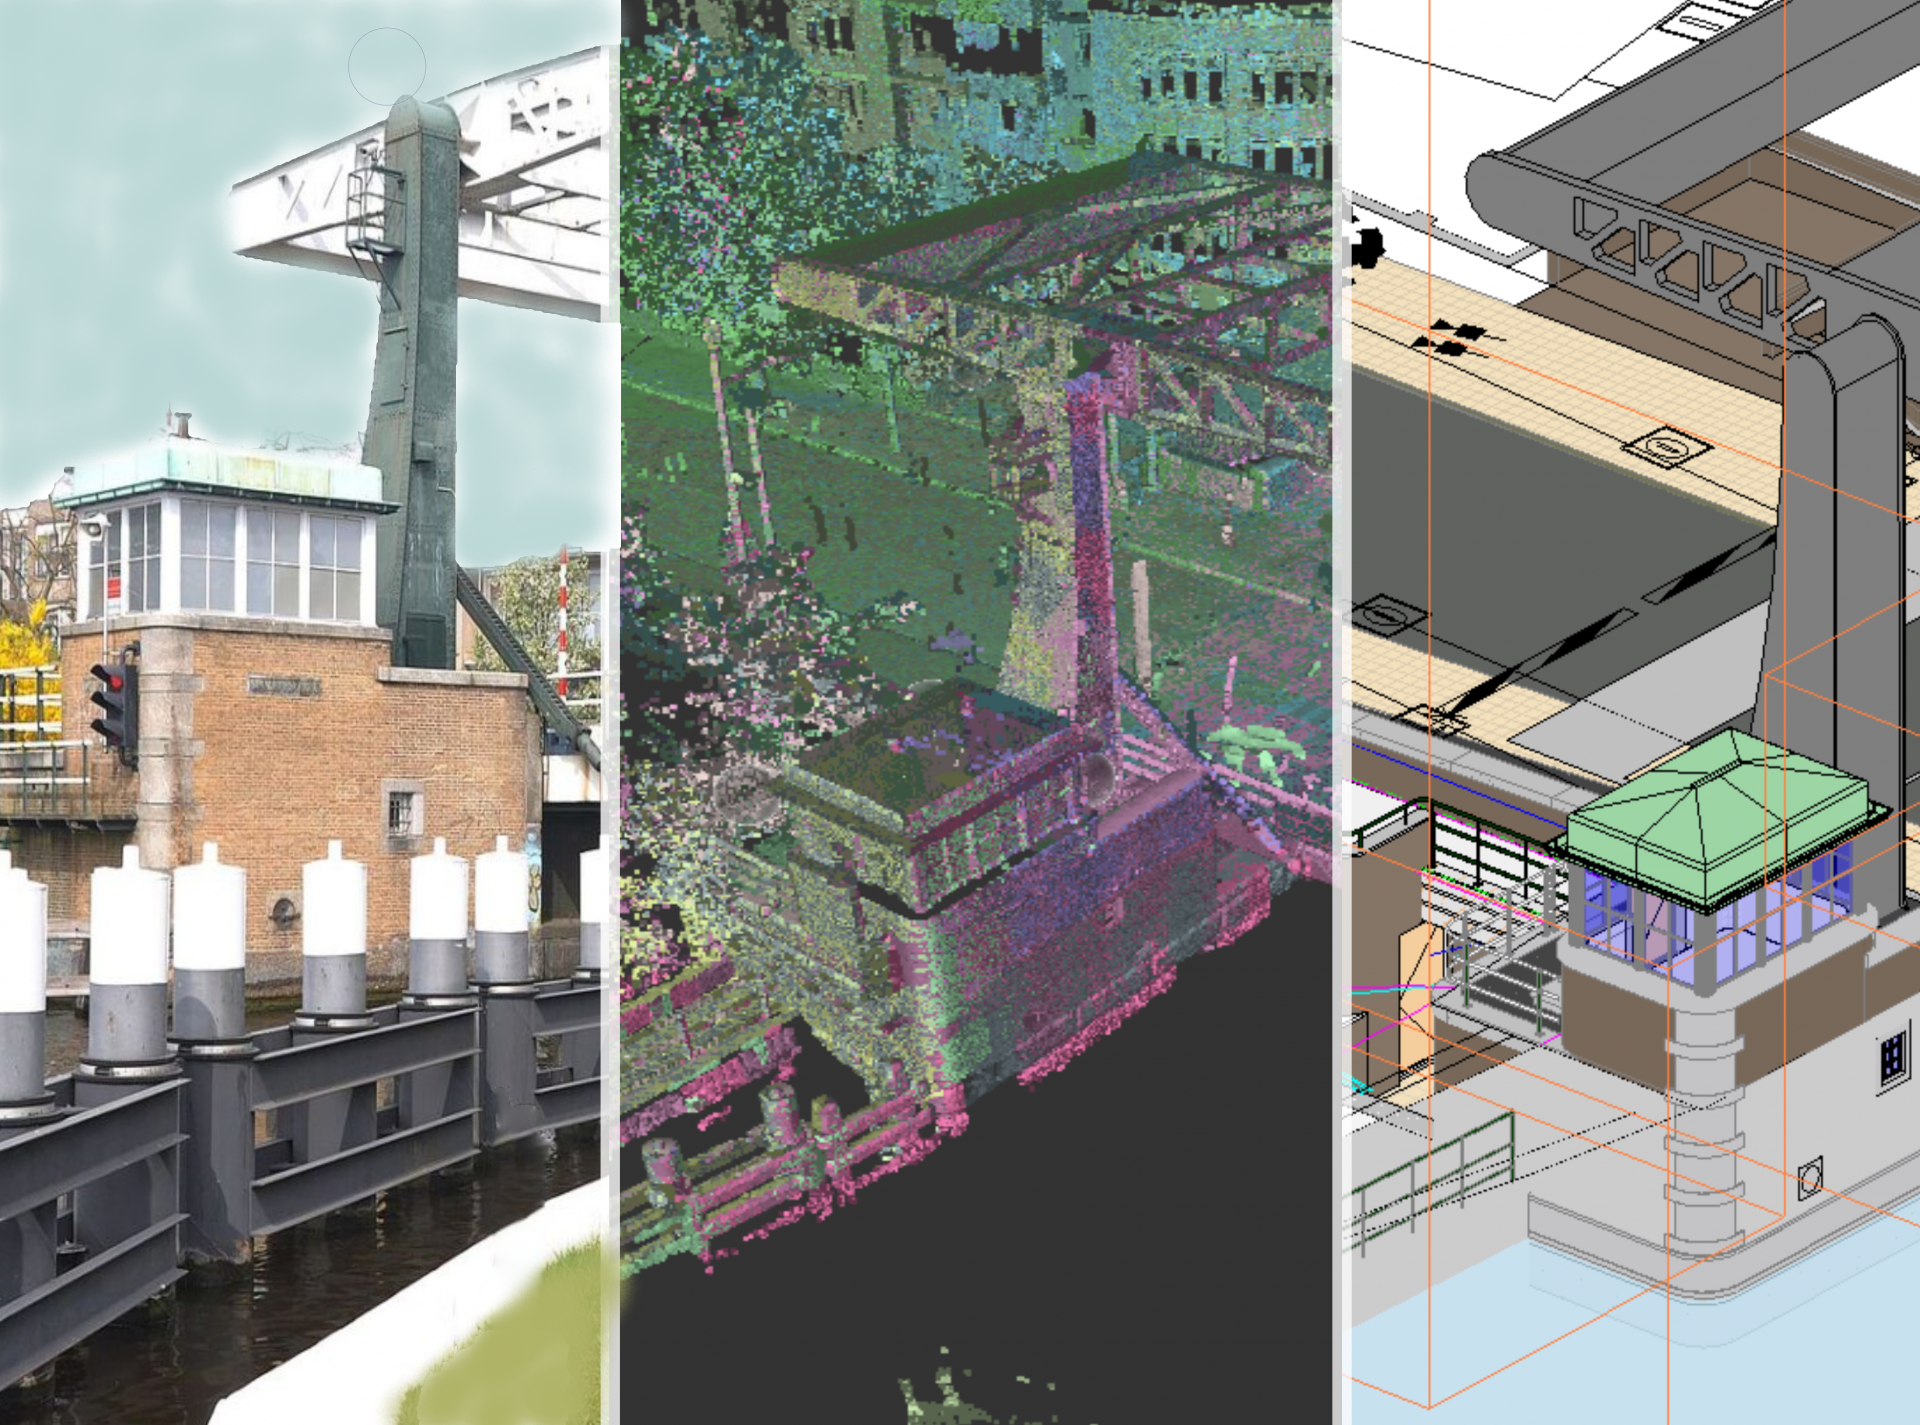 3D scan in the preliminary phase as a basis for plan development